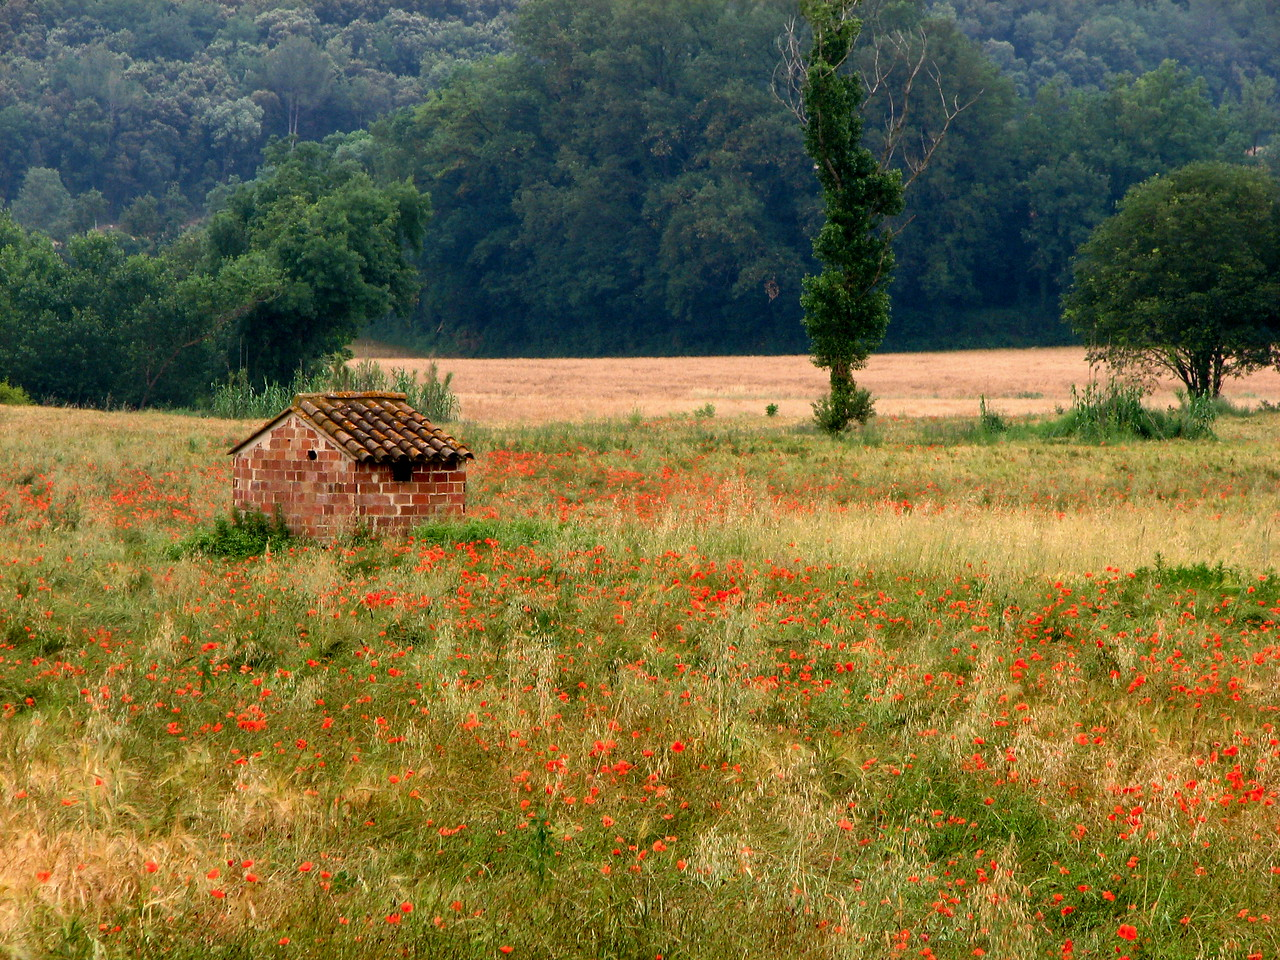 Poppies and an outbuilding in the countryside of Catalonia, Spain.